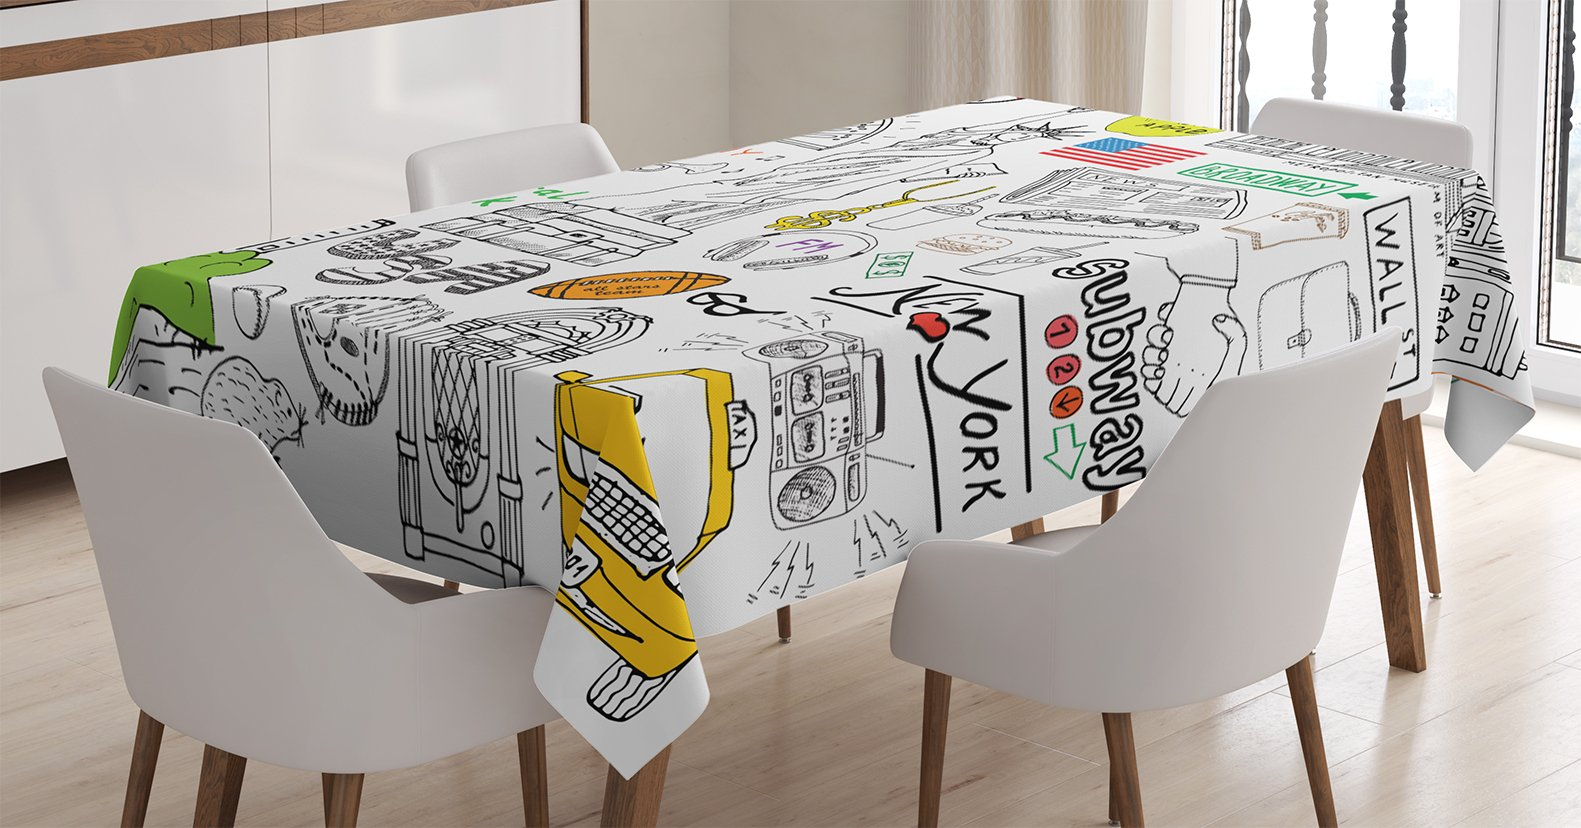 Ambesonne American Decor Tablecloth, New York City Culture with Metropolitan Museum Broadway Crossroad Wall Street Sketch Style, Dining Room Kitchen Rectangular Table Cover, 60 X 84 inches, White